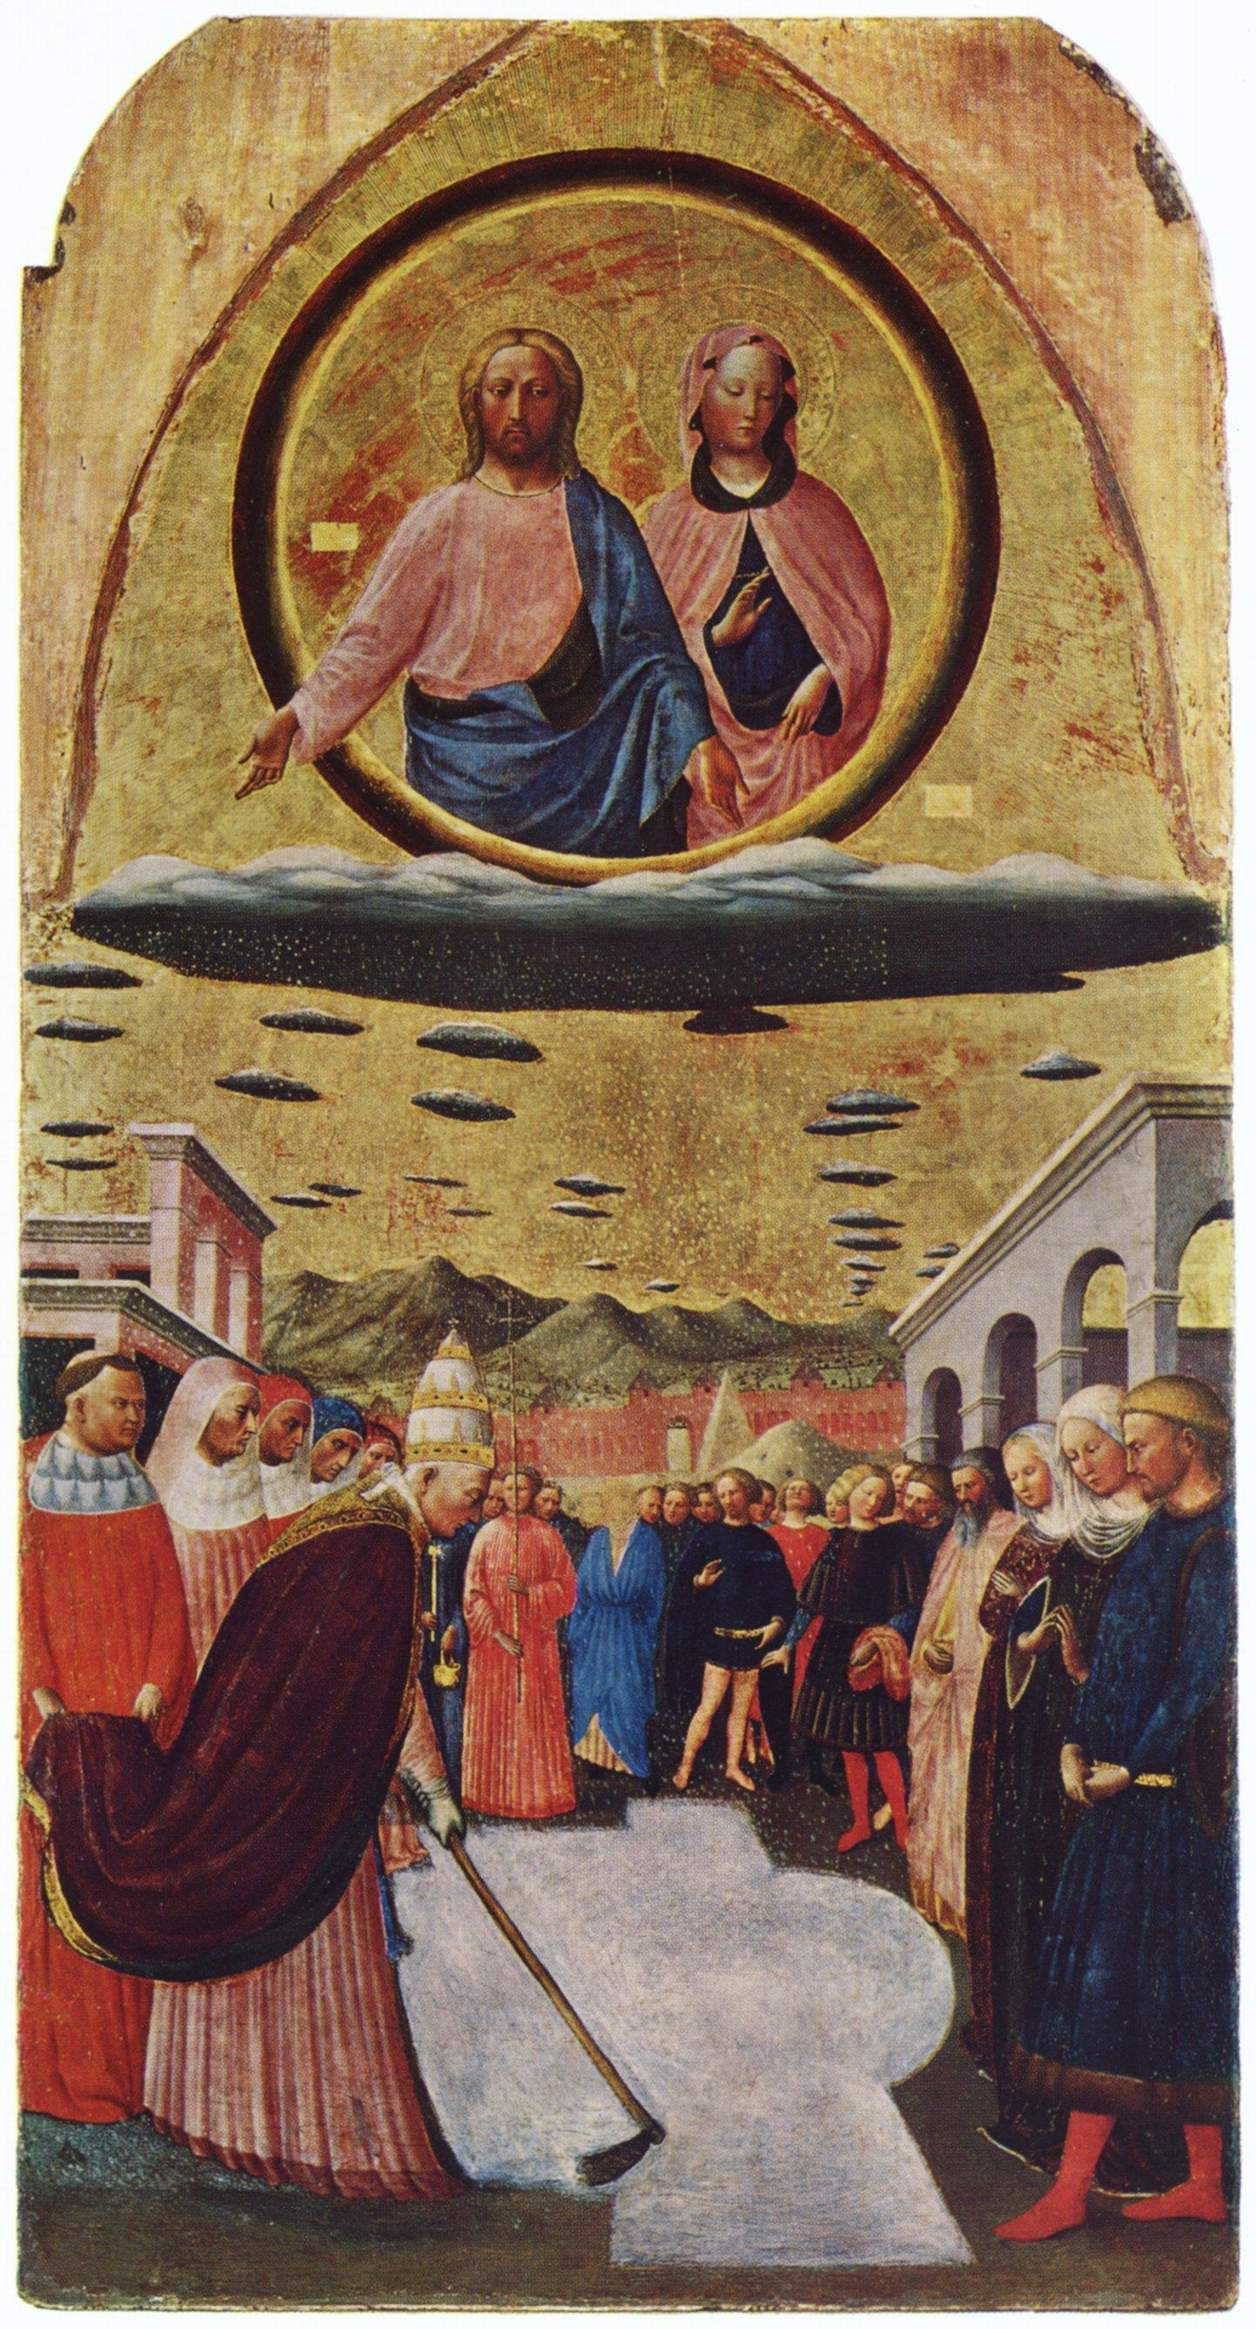 http://upload.wikimedia.org/wikipedia/commons/f/fa/Masolino_007.jpg